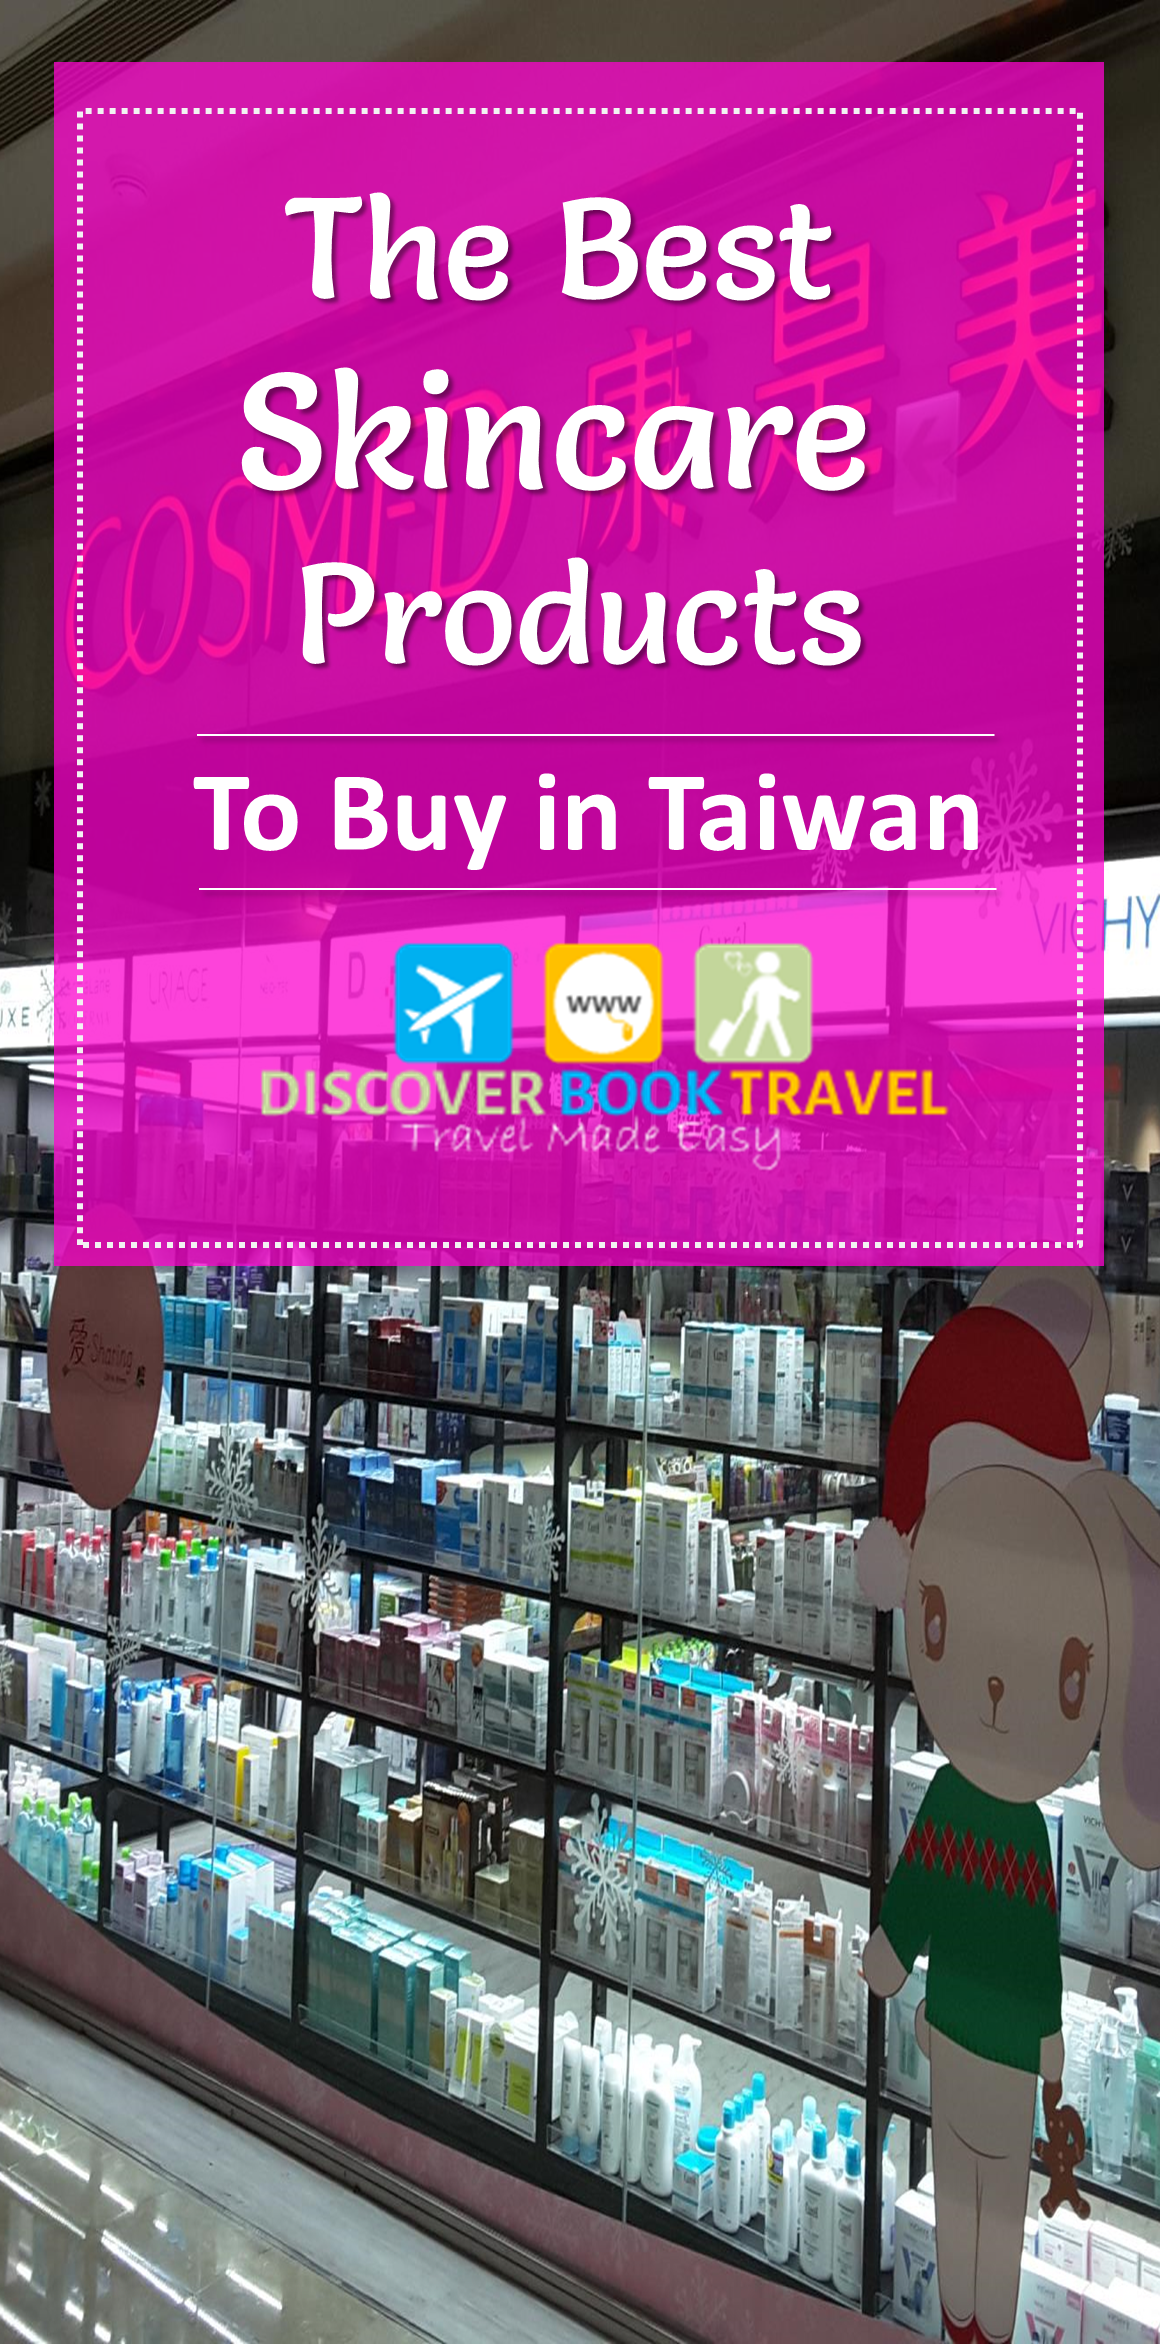 Top 10 Skincare Products To Buy In Taiwan Updated 2019 Discover Book Travel Singapore Travel Blog Singapore Travel Taiwan Travel Travel Book